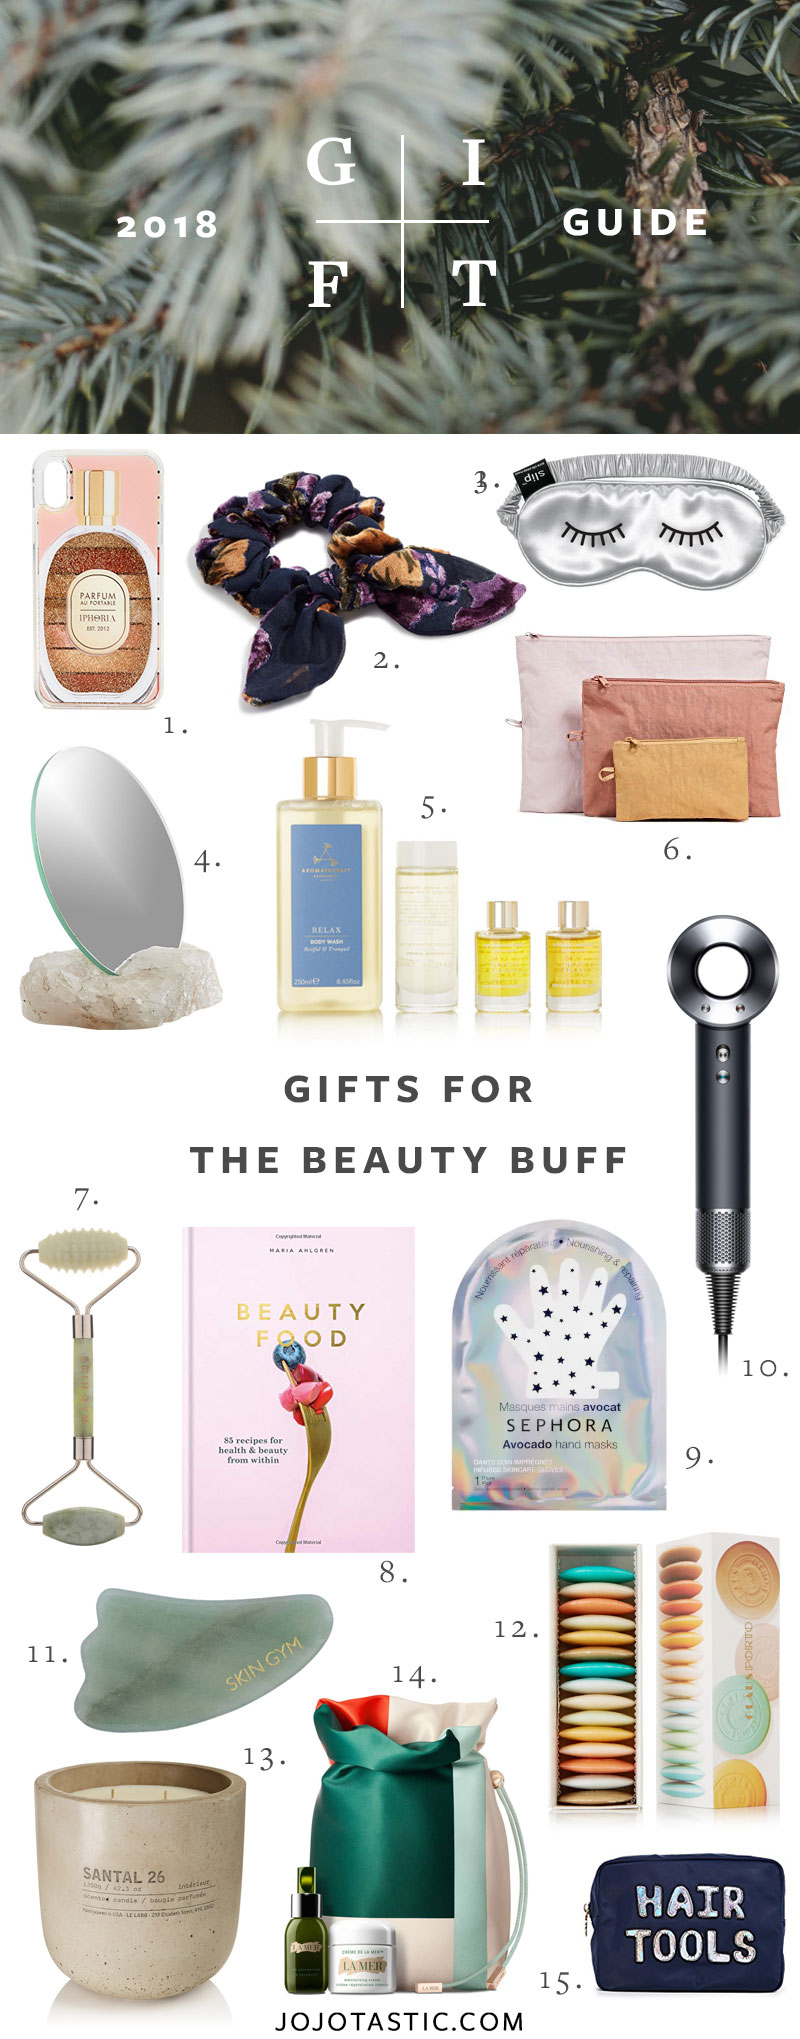 Beauty and Skincare Gift Ideas, Gift Guide for Christmas & Holidays 2018 via jojotastic.com #giftguide #giftidea #giftgiving #gifts #presents #christmaspresents #christmasgiftideas #christmasgift #skincare #wellness #beauty #skincaregifts #beautygifts #beautybuff